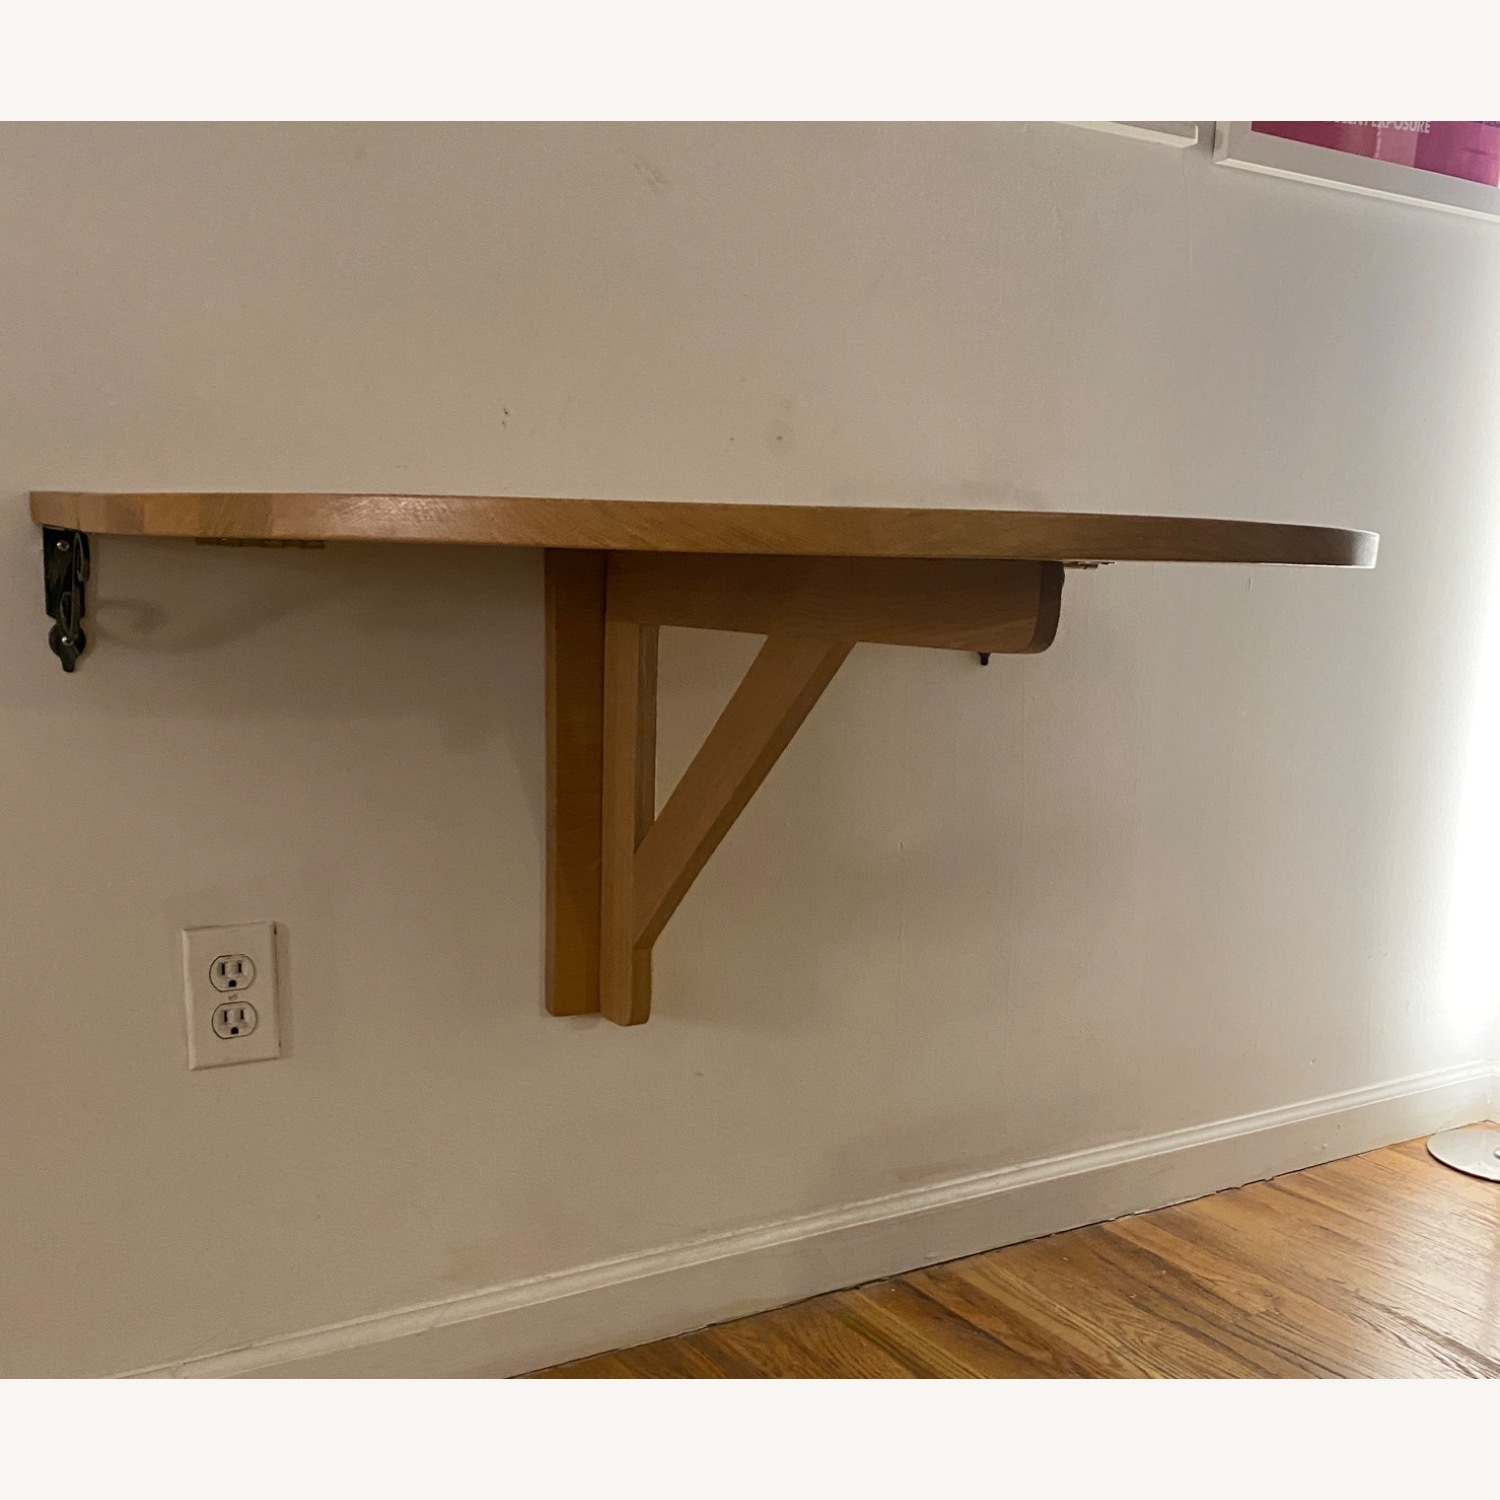 Solid Oak Wall Mounted Drop Leaf Table - image-1